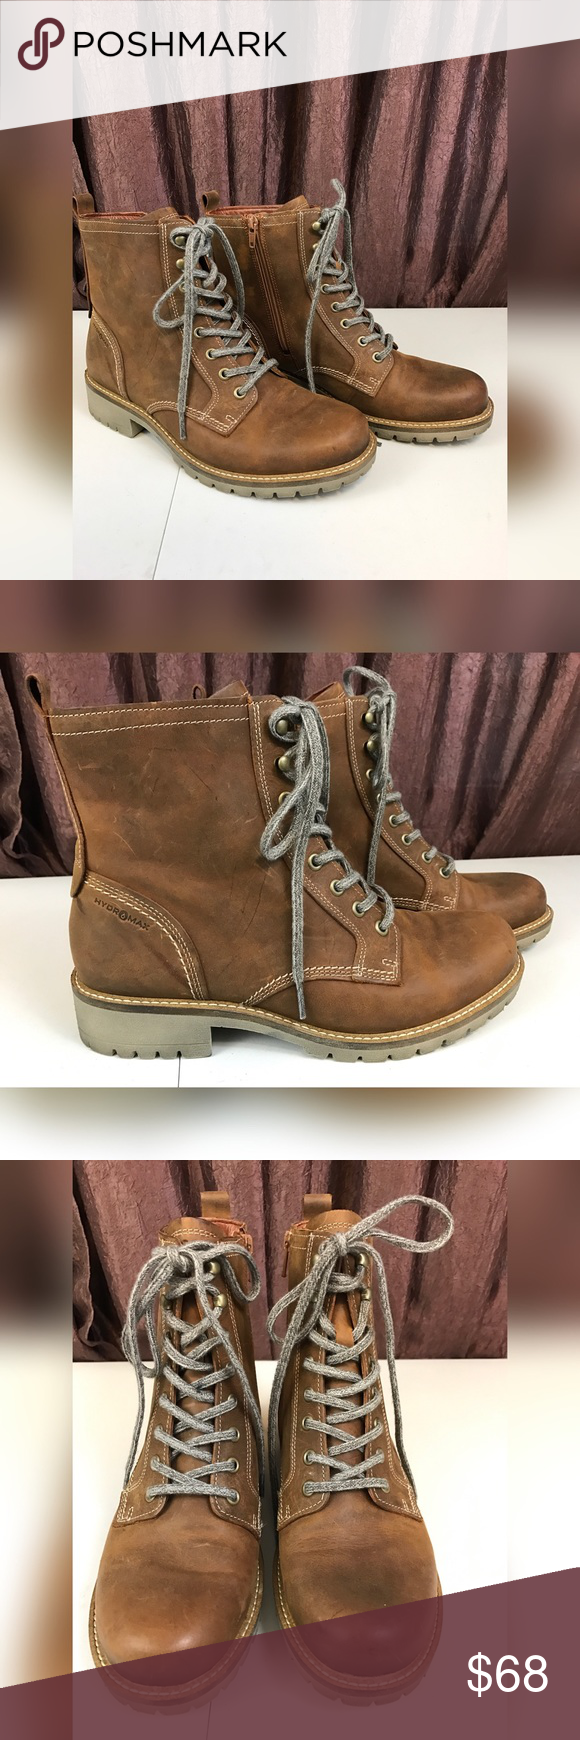 2f213aab59b Ecco elaine lace up boot size 9.5 Women's ECCO Elaine Lace Up ...